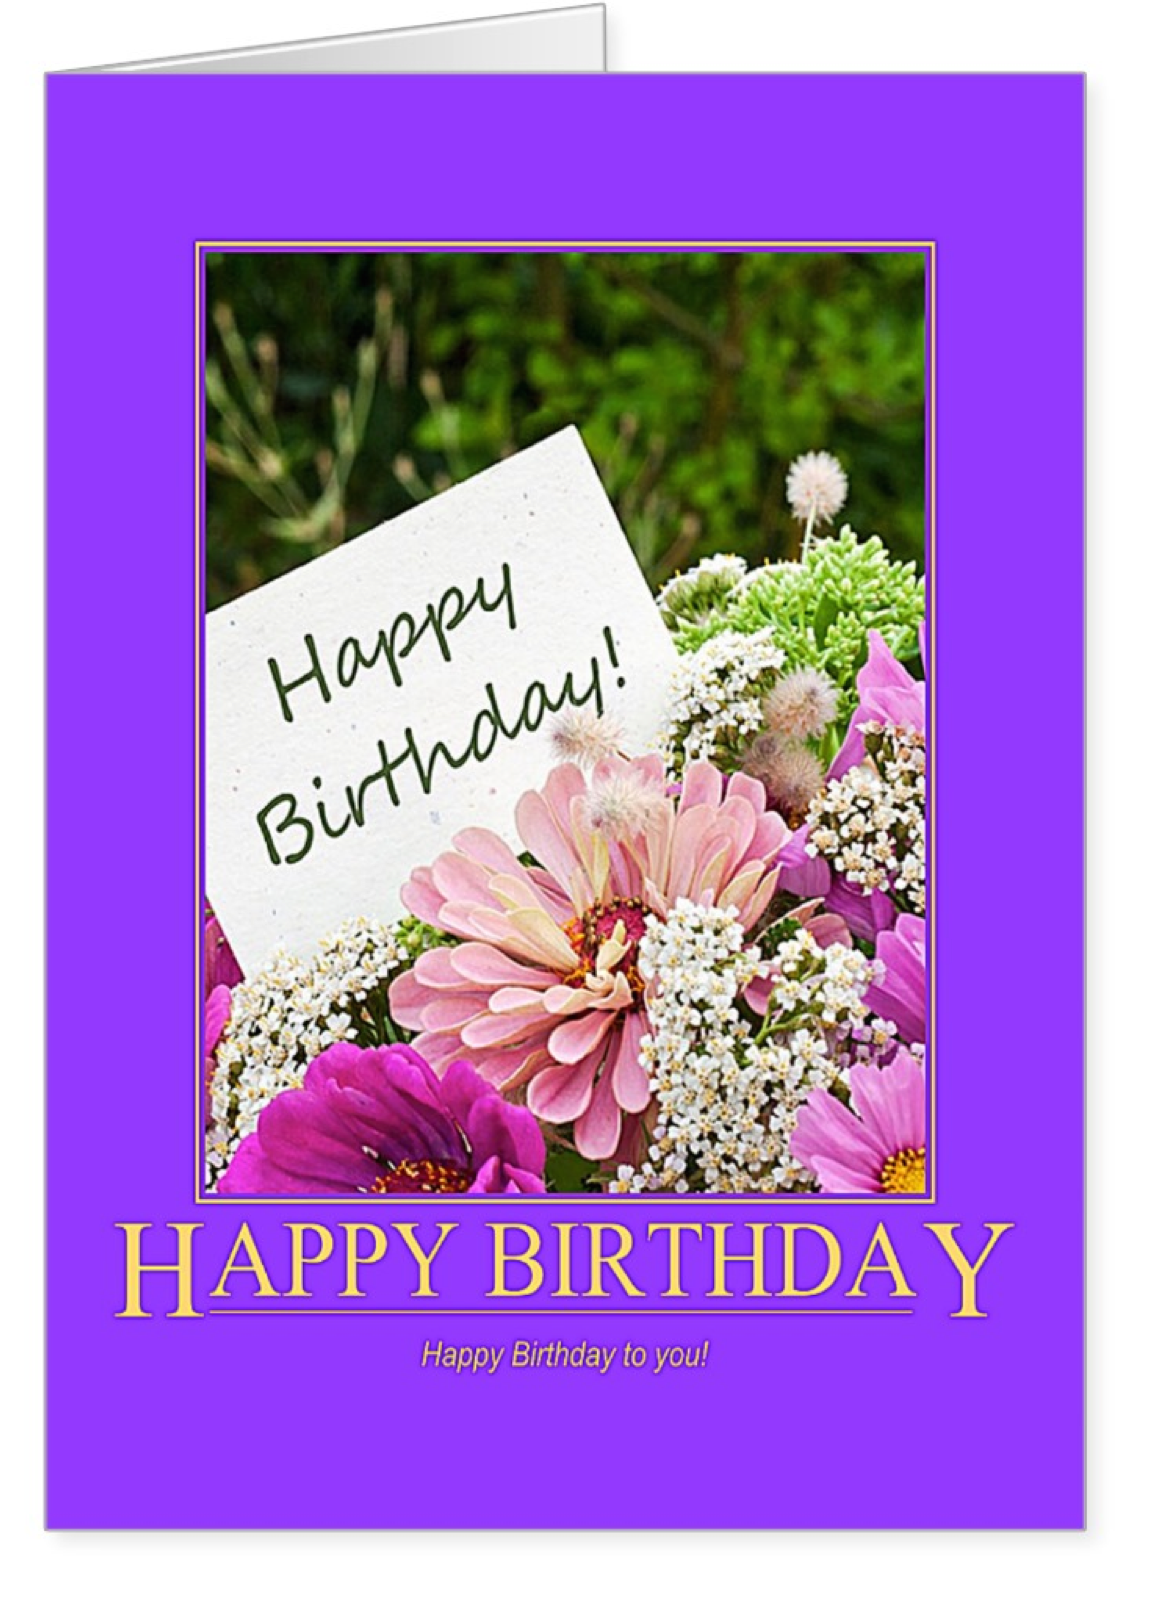 Happy birthday card with beautiful flowers birthday gift cards complement the words to convey your loving feelings birthday gift cards greeting cards izmirmasajfo